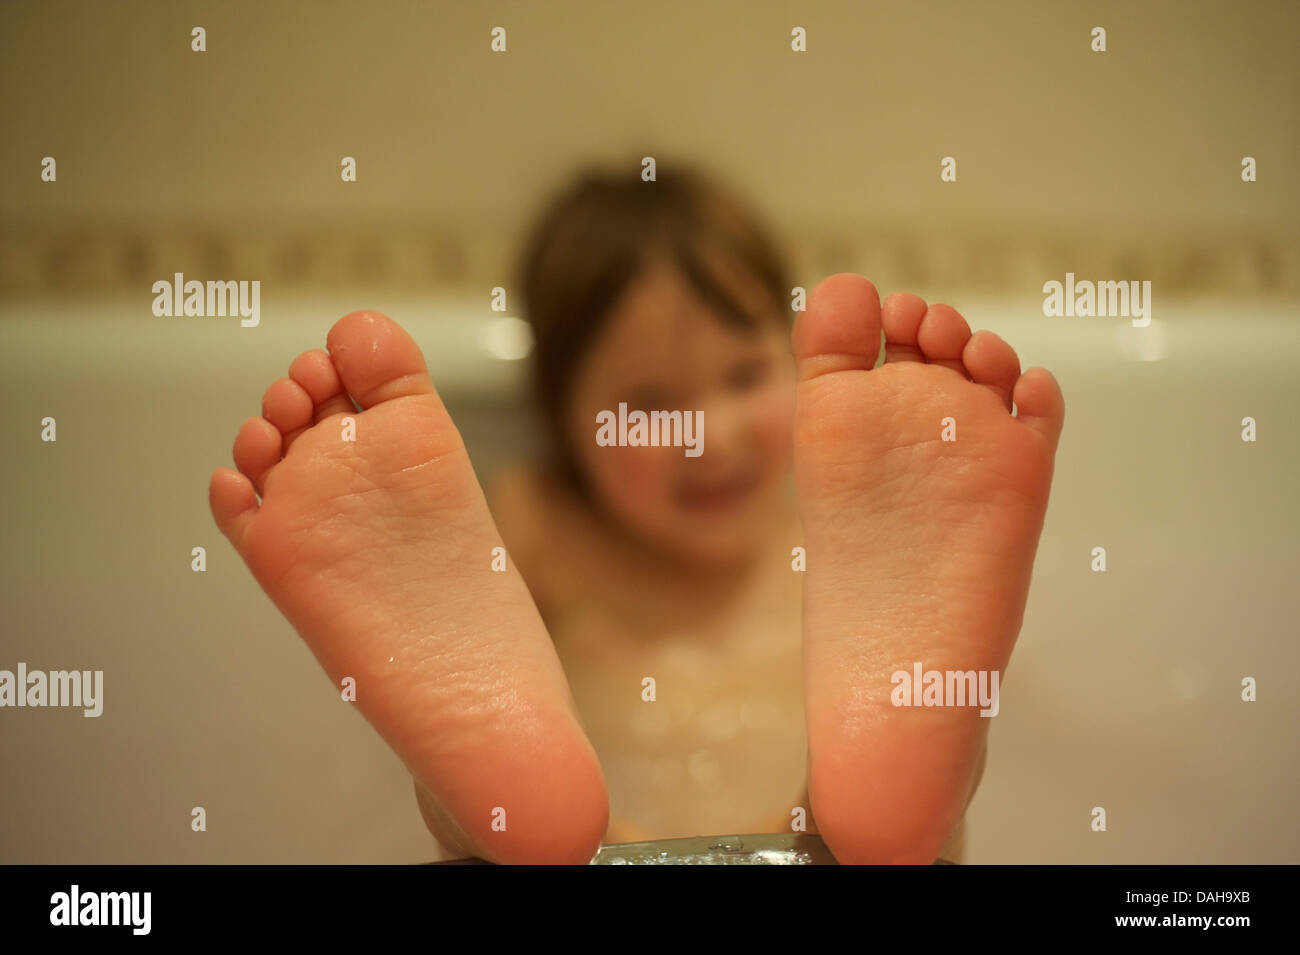 Child's foot sticking out of the bath. MODEL RELEASED - Stock Image